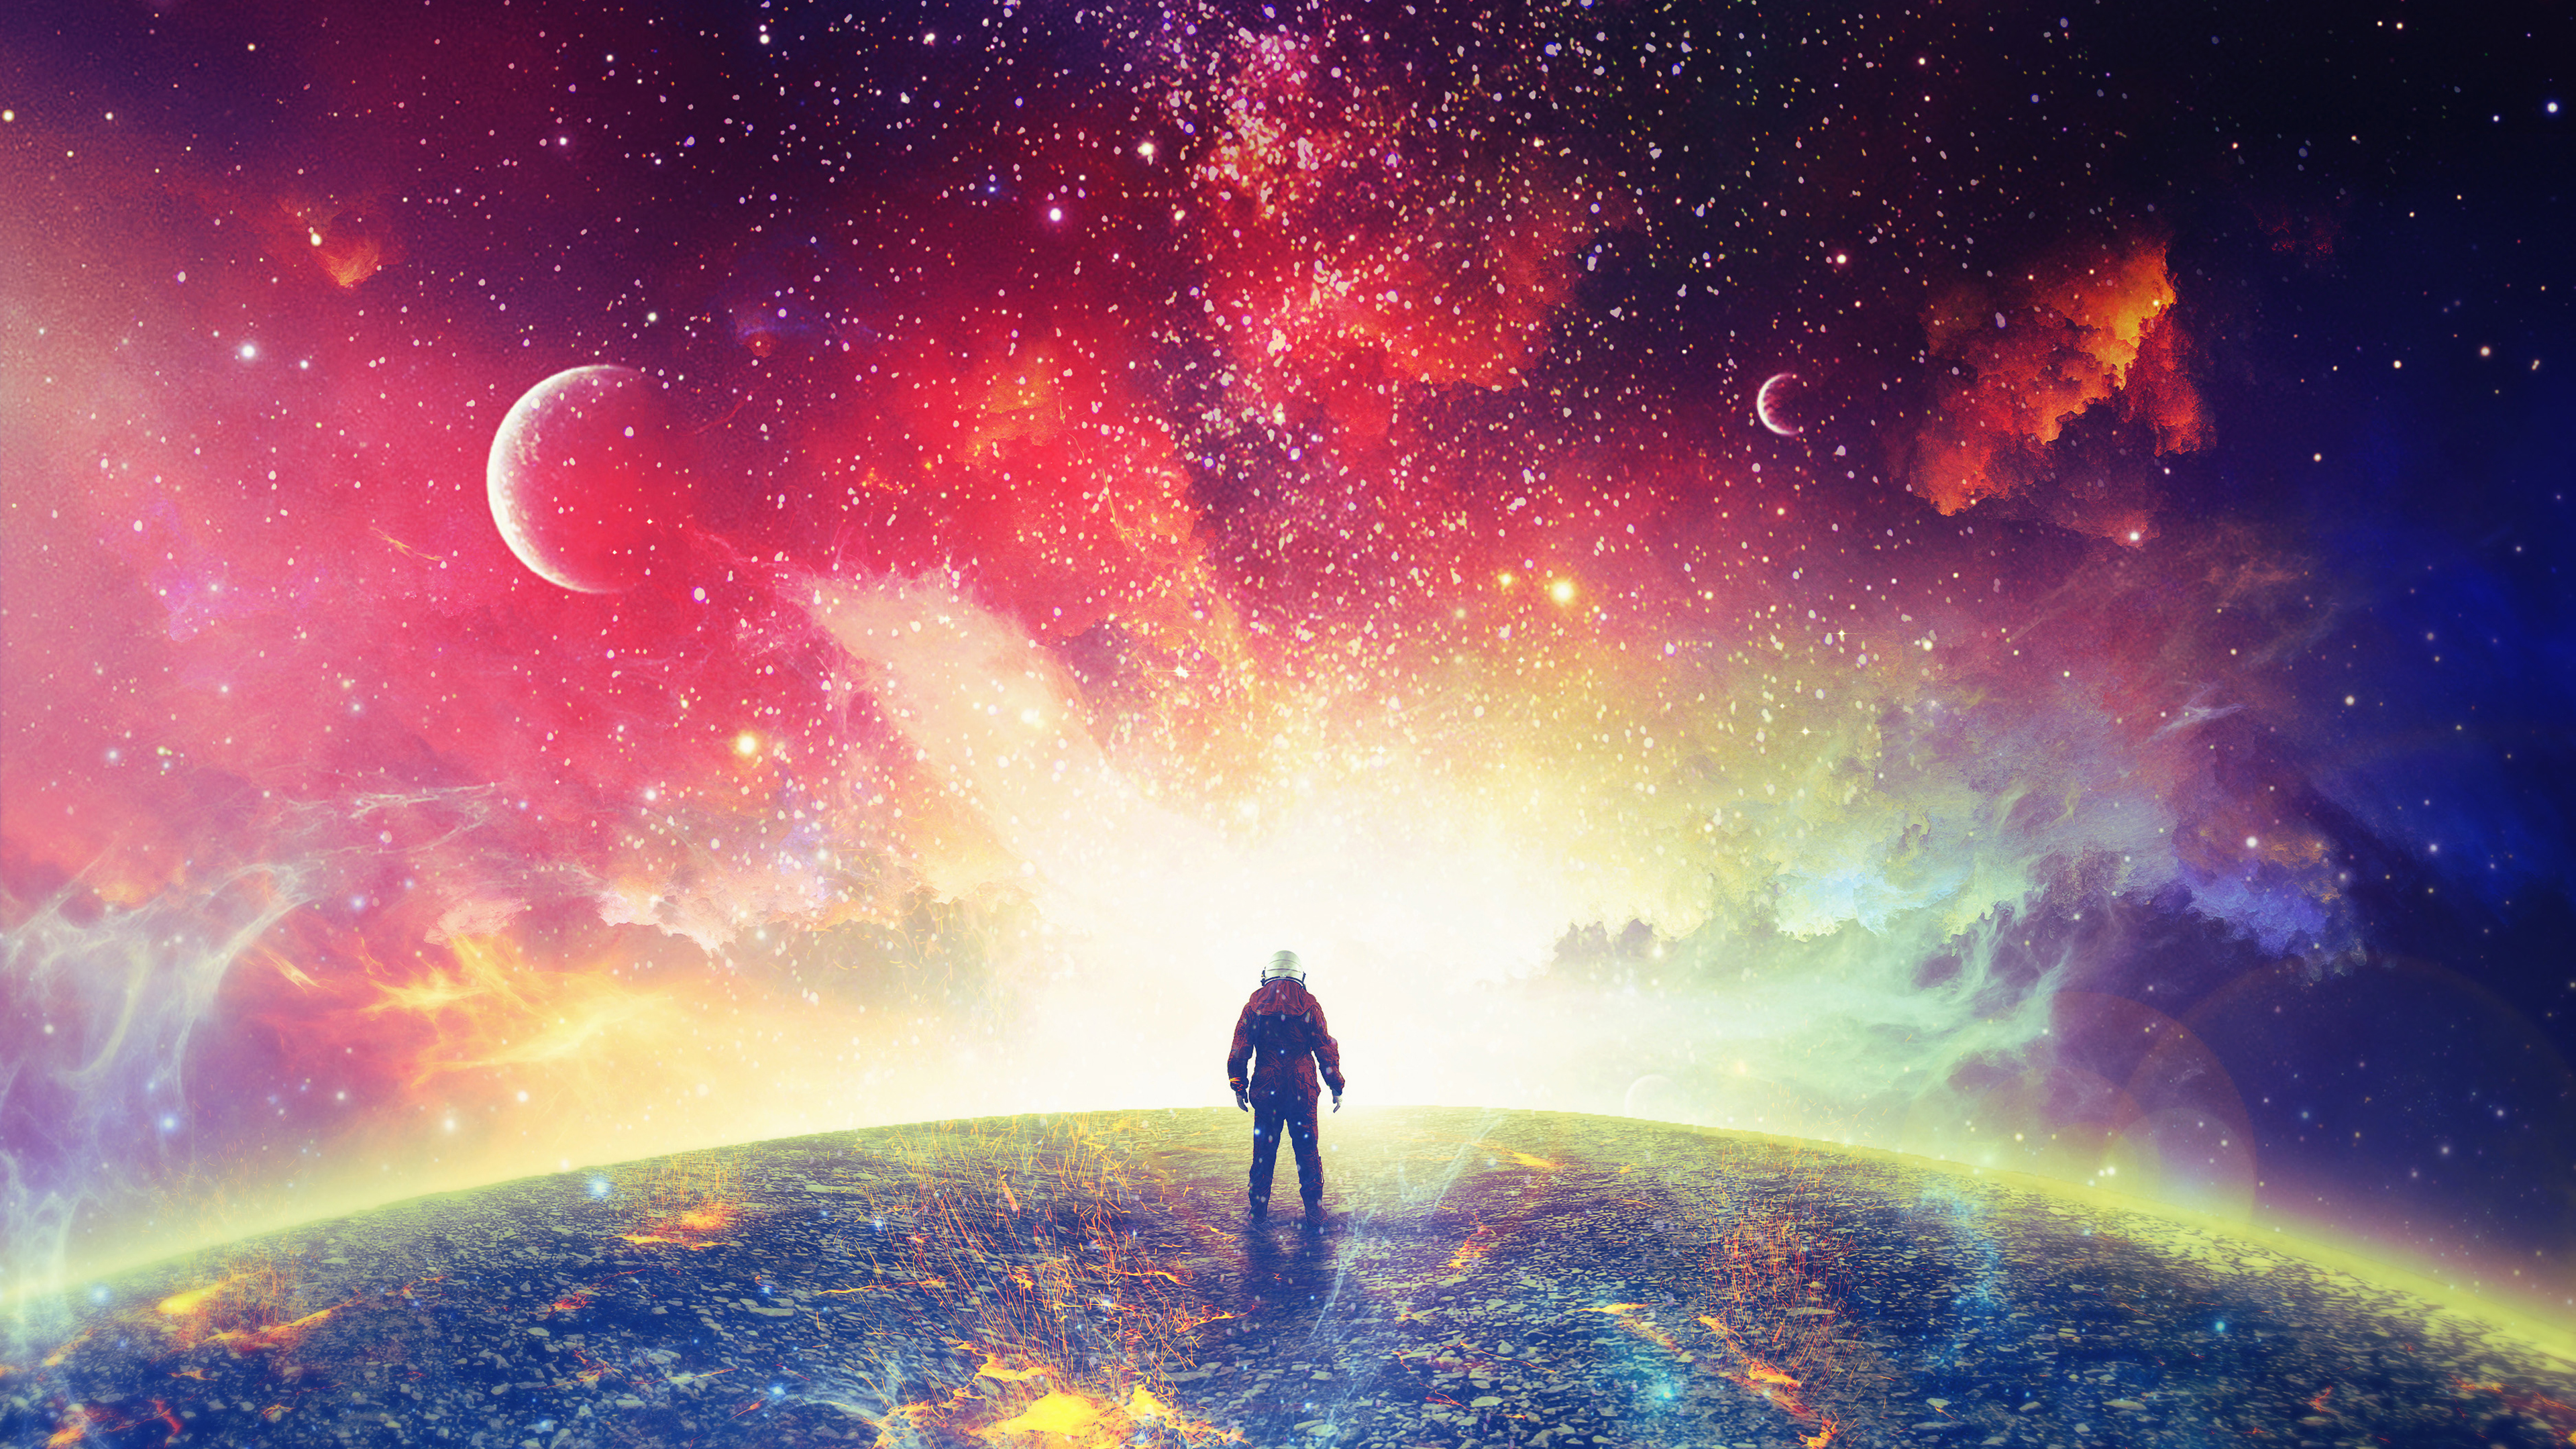 Surreal Space Astronaut 4k Wallpapers Iphone Wallpaper 4k Astronaut 831967 Hd Wallpaper Backgrounds Download